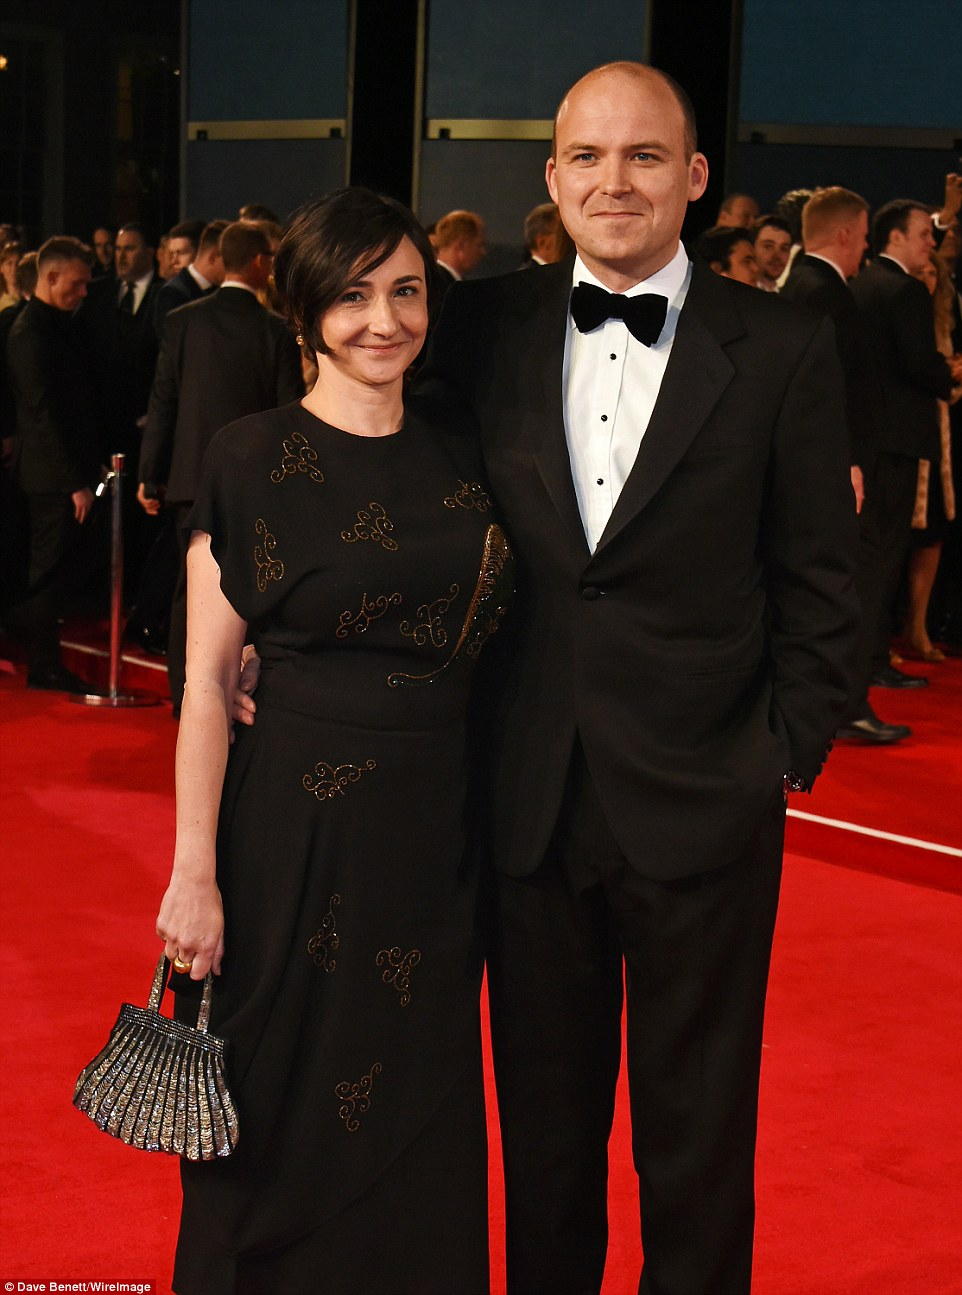 Part of the family: Rory Kinnear, who is the MI6 Chief of Staff in the Bond film, attended with his partner Pandora Colin